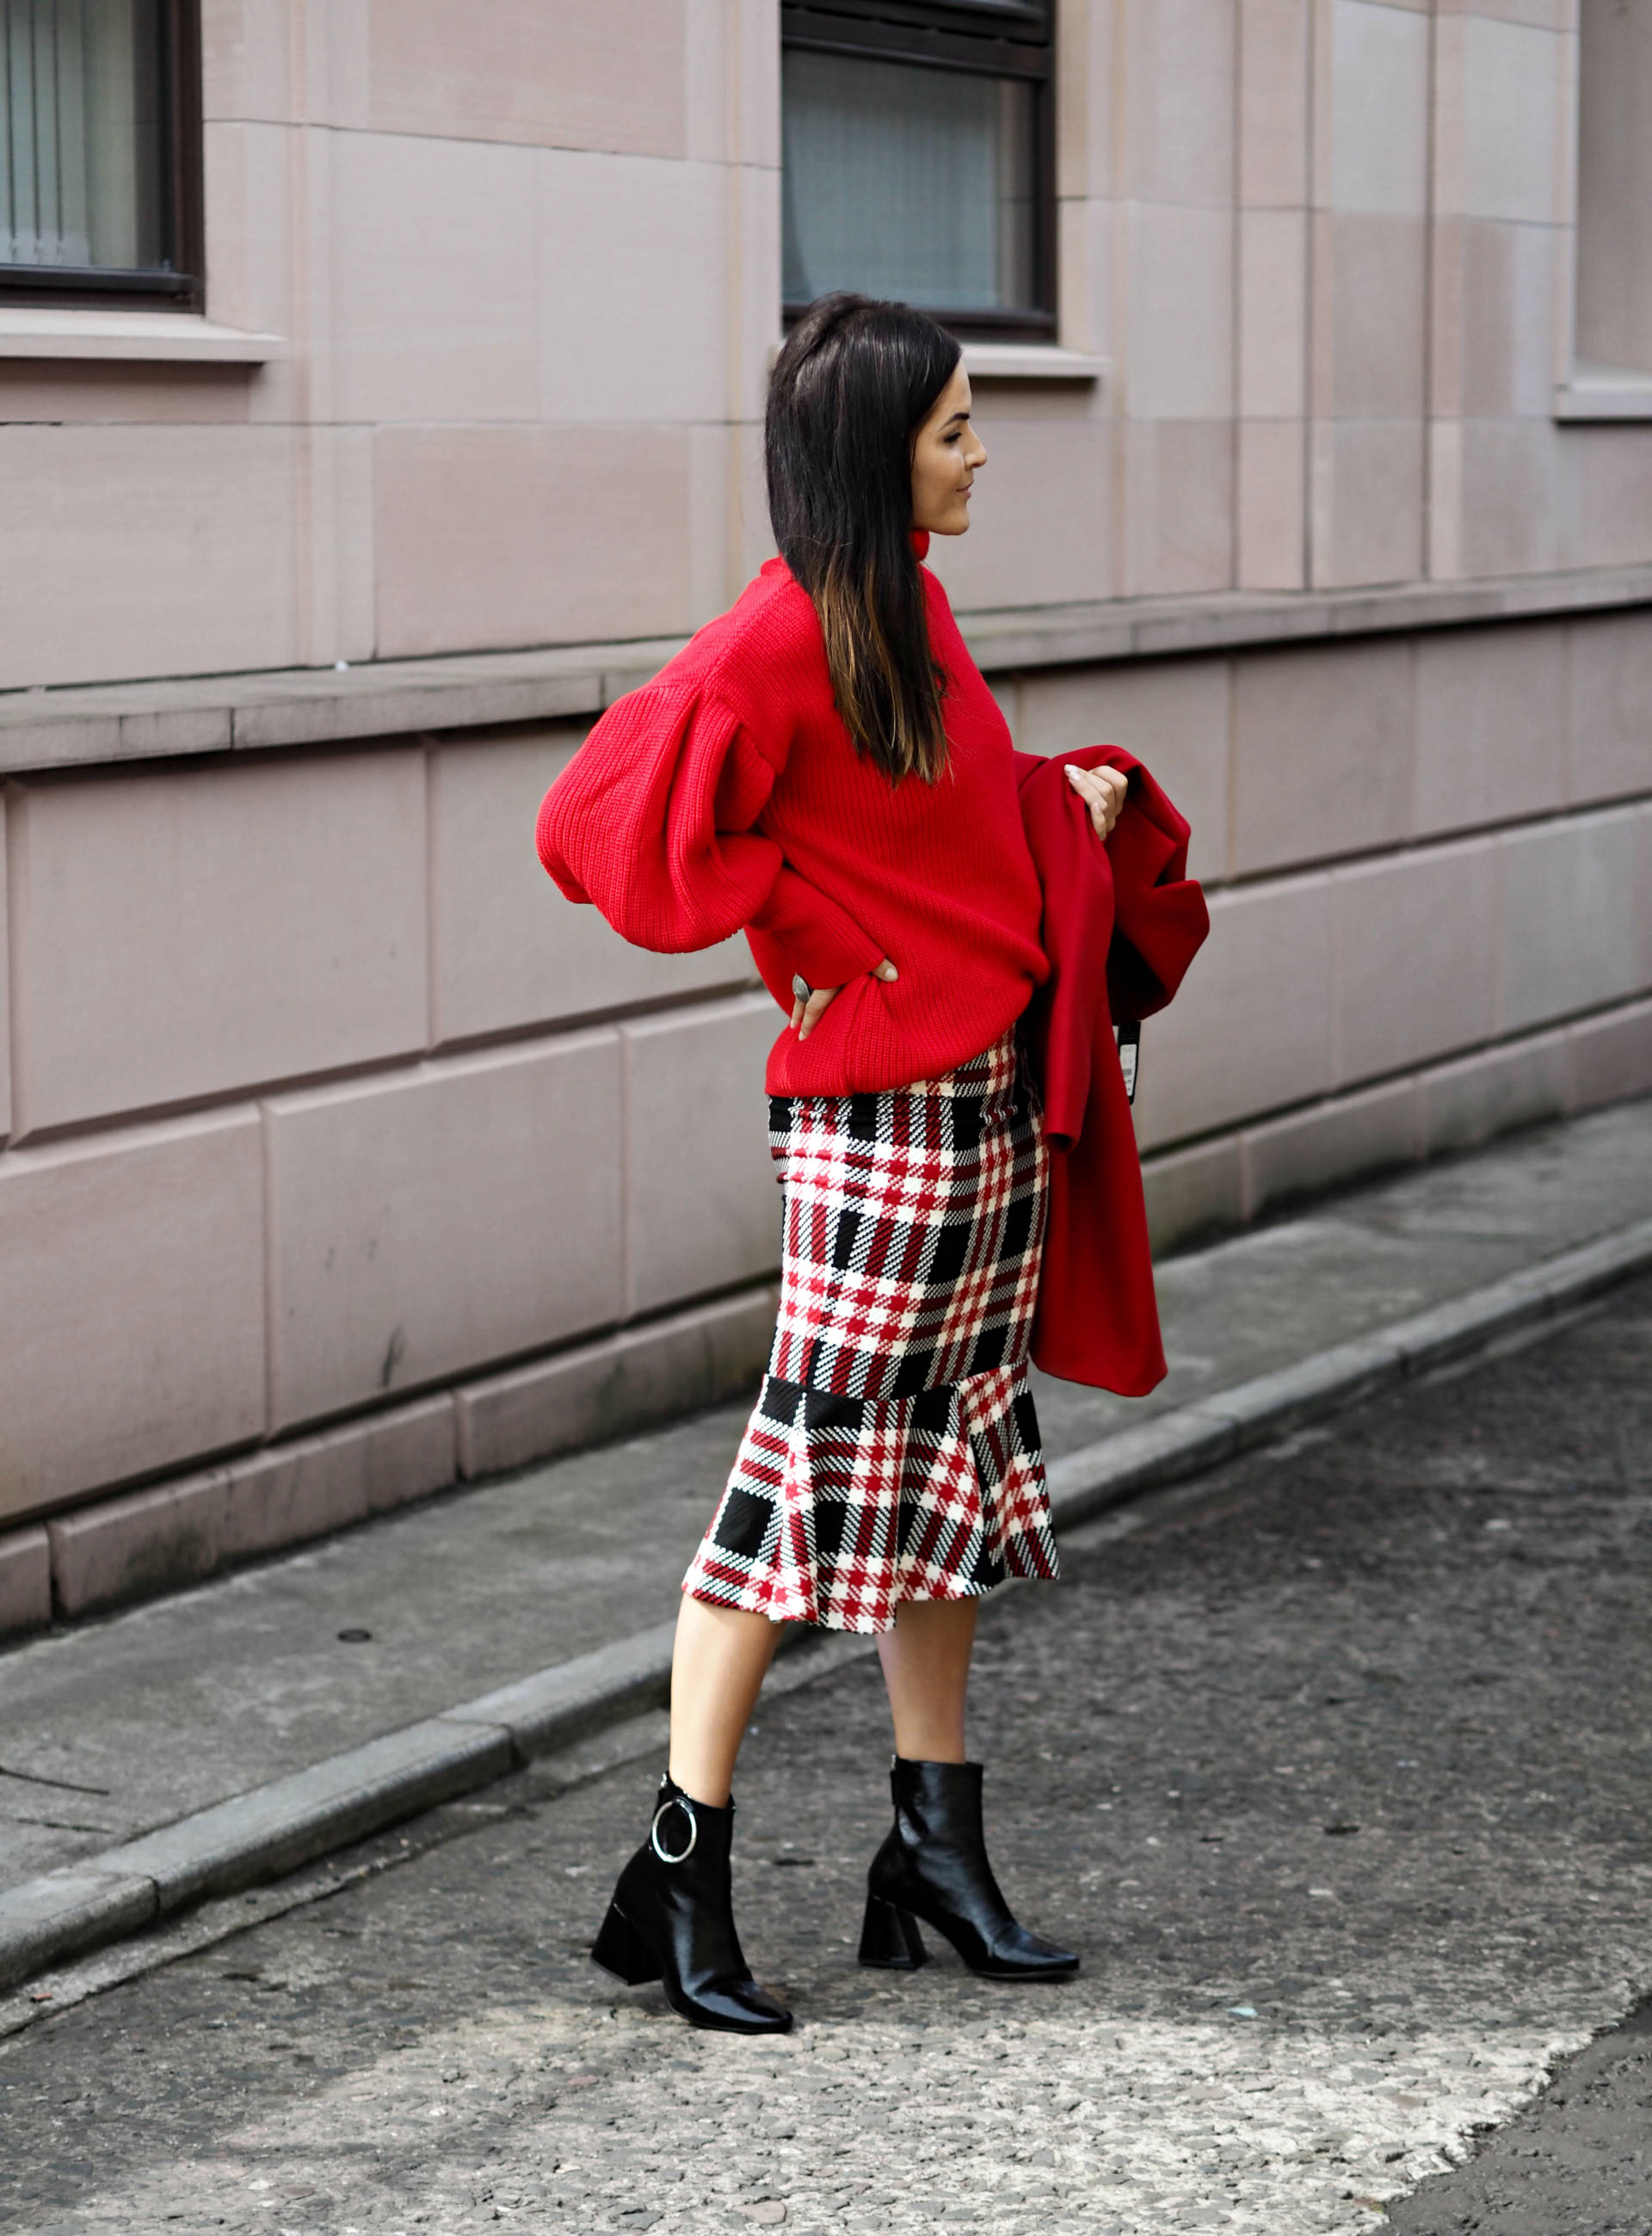 RED-TO-TOE-2017-AUTUMN-WINTER-TRENDS-STYLED-BY-LAFOTKA-FOR-INTU